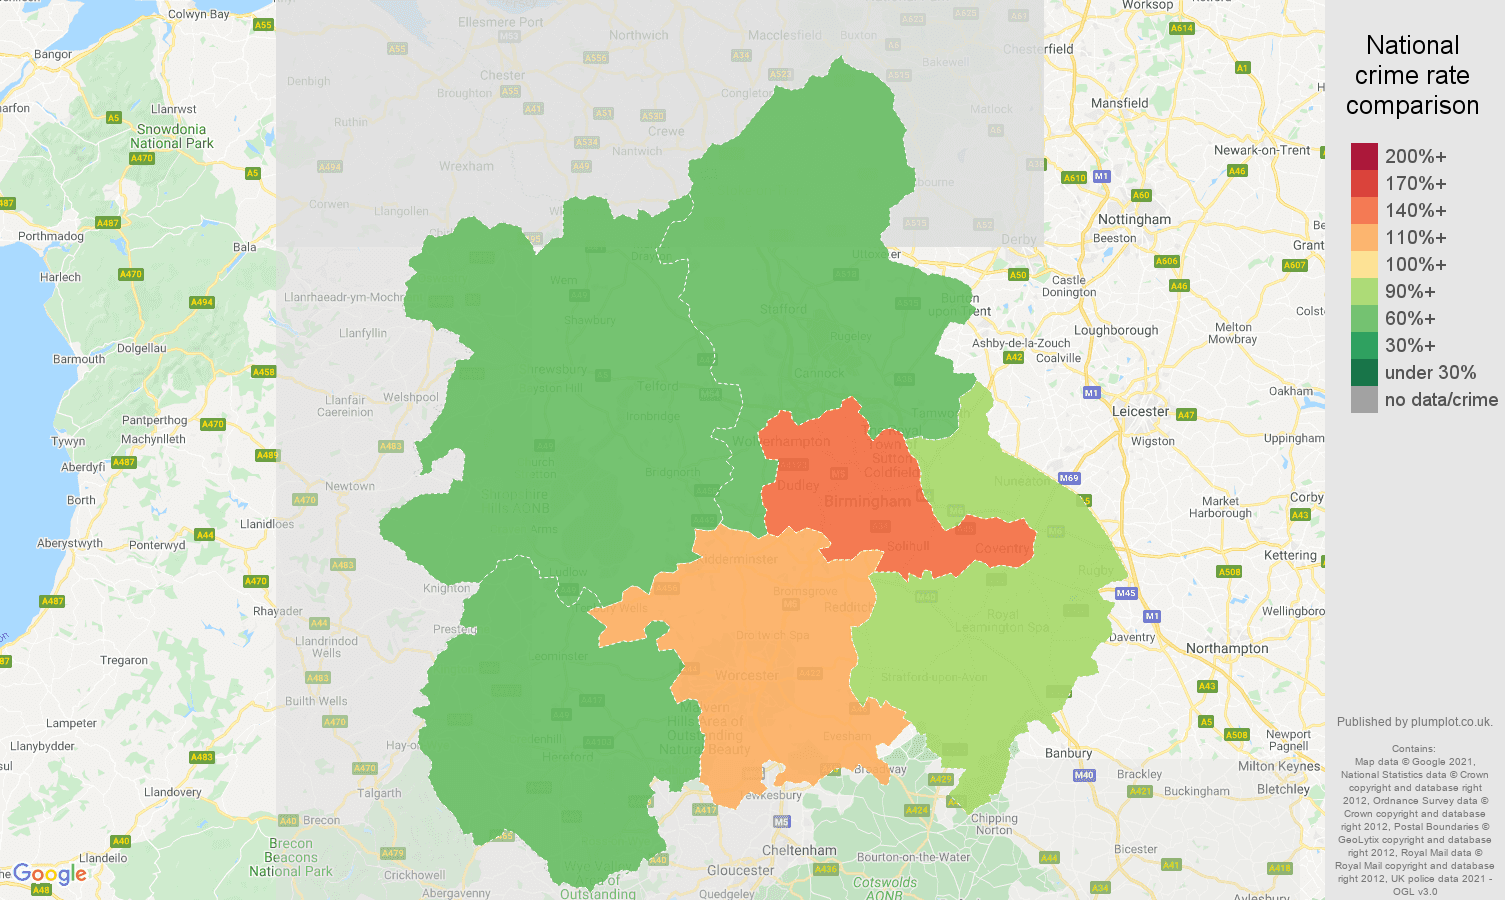 West Midlands burglary crime rate comparison map